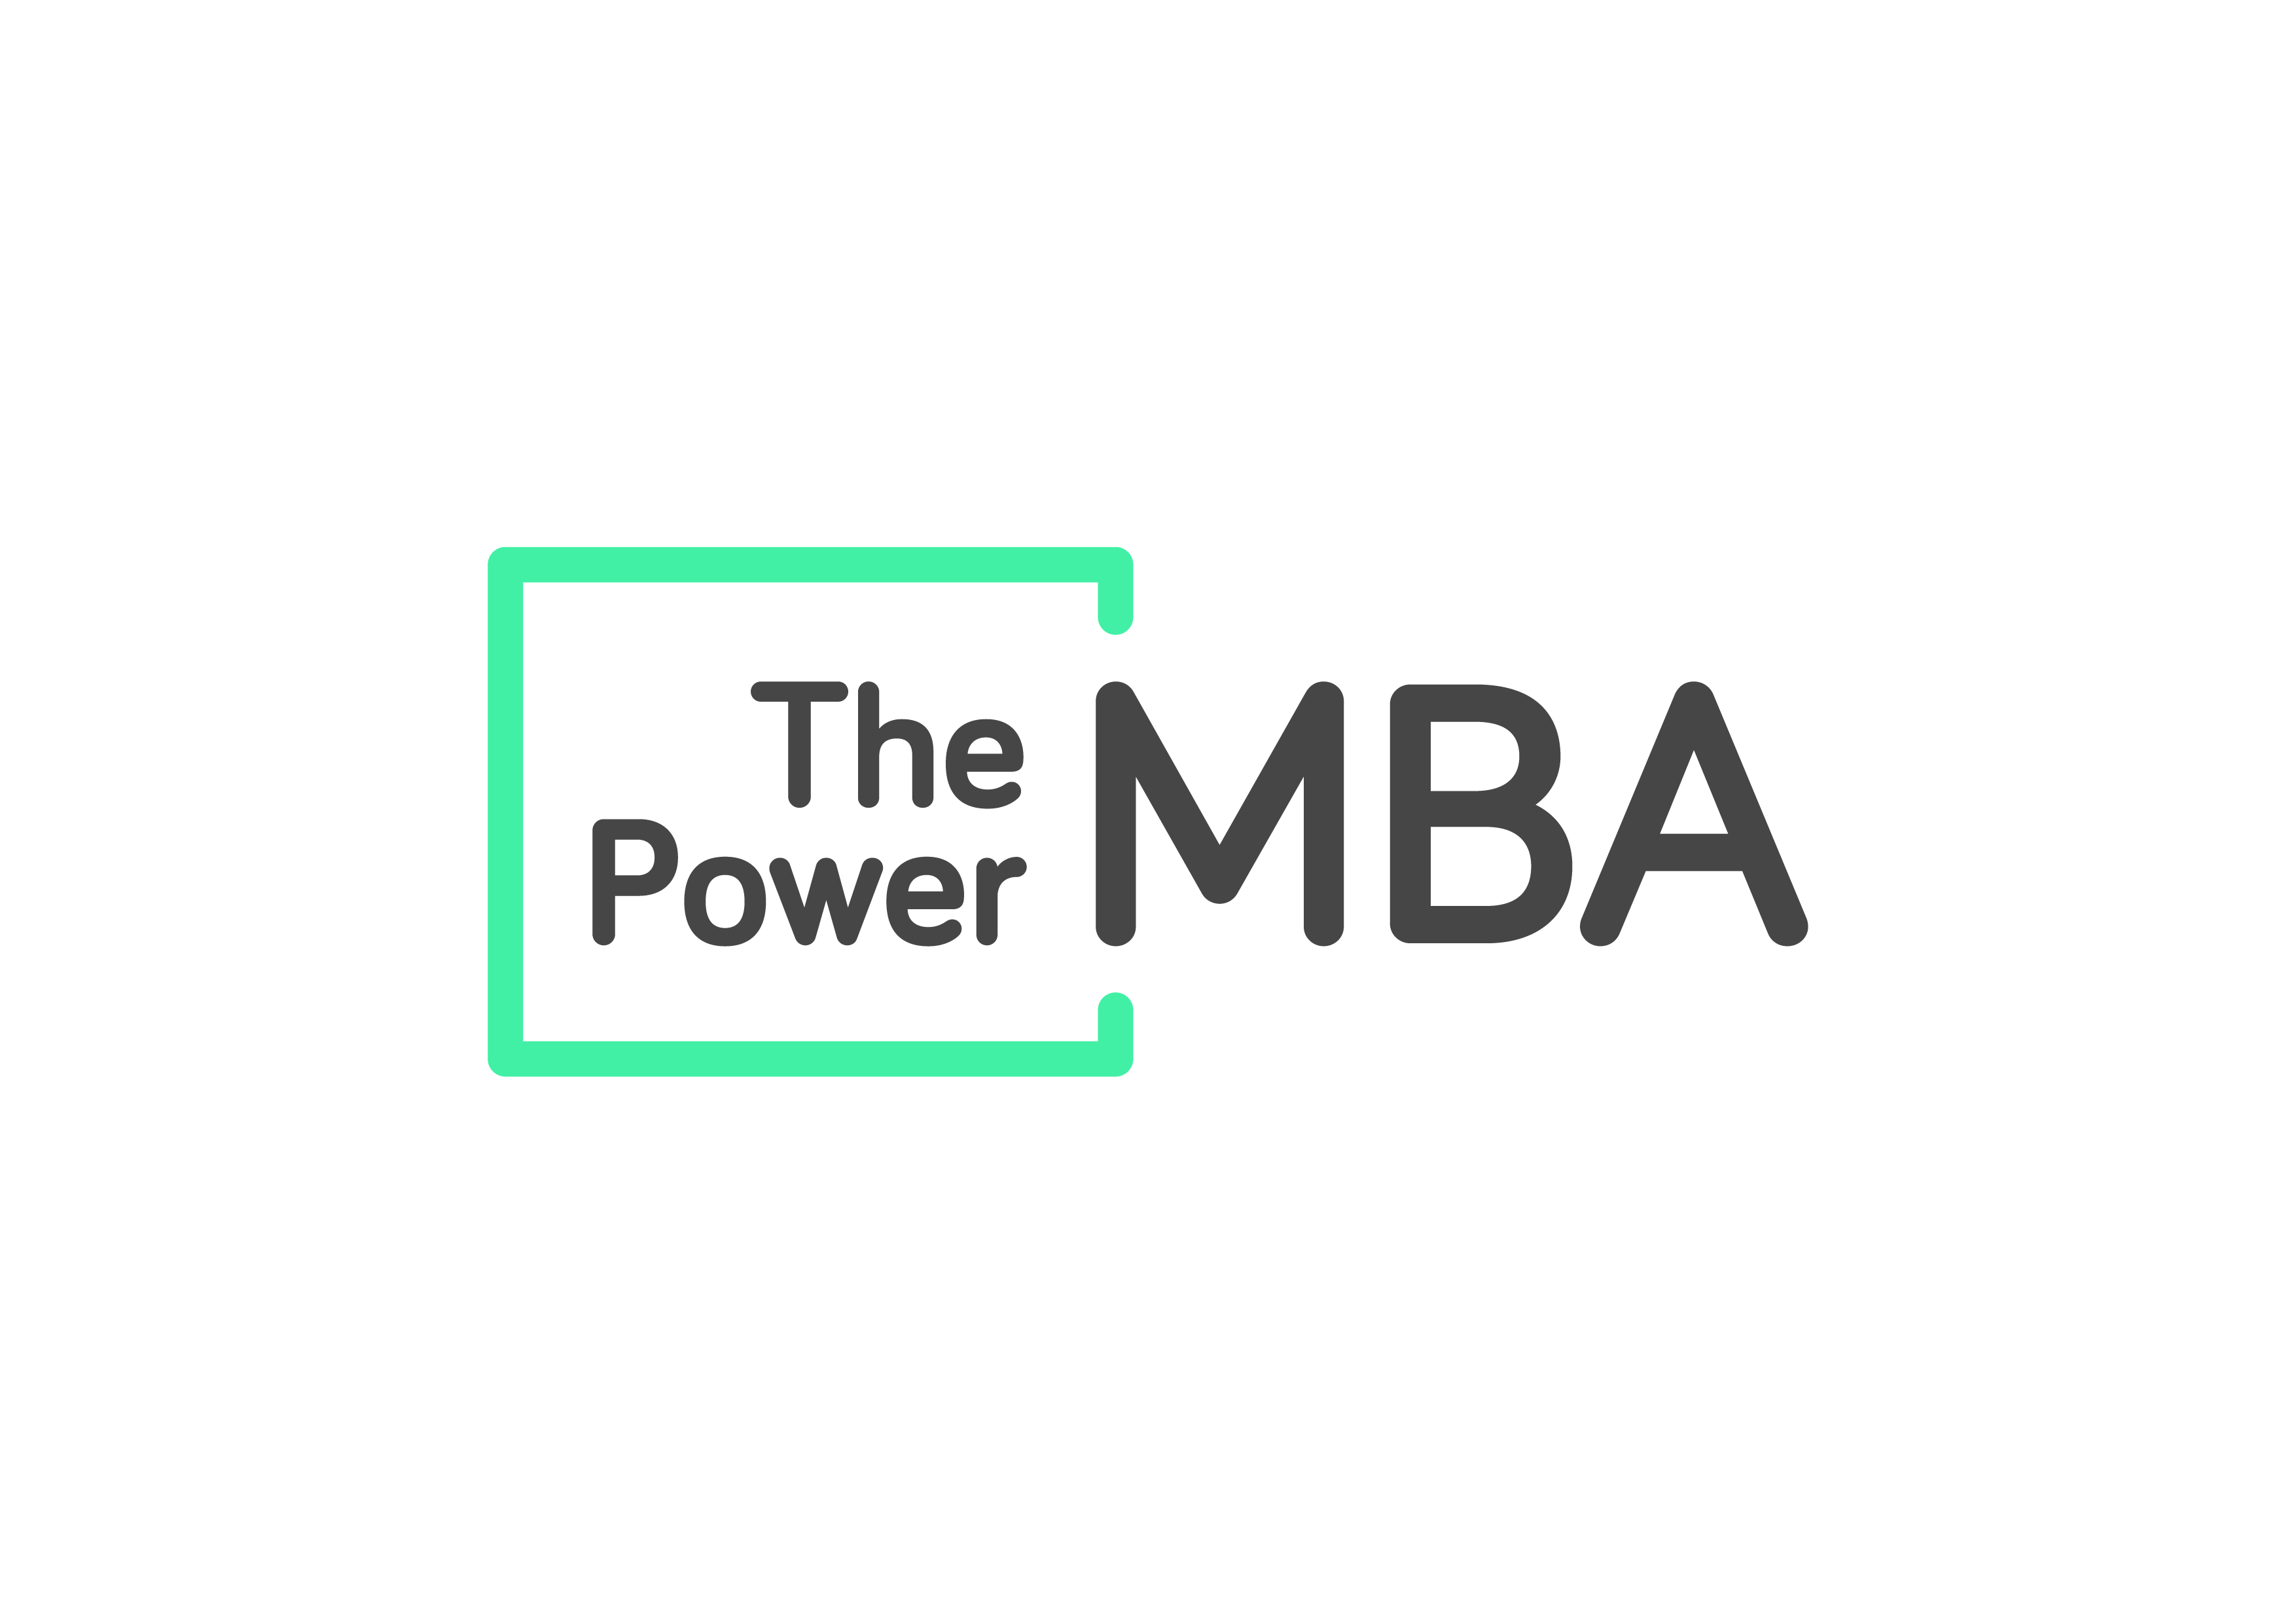 logo the power mba